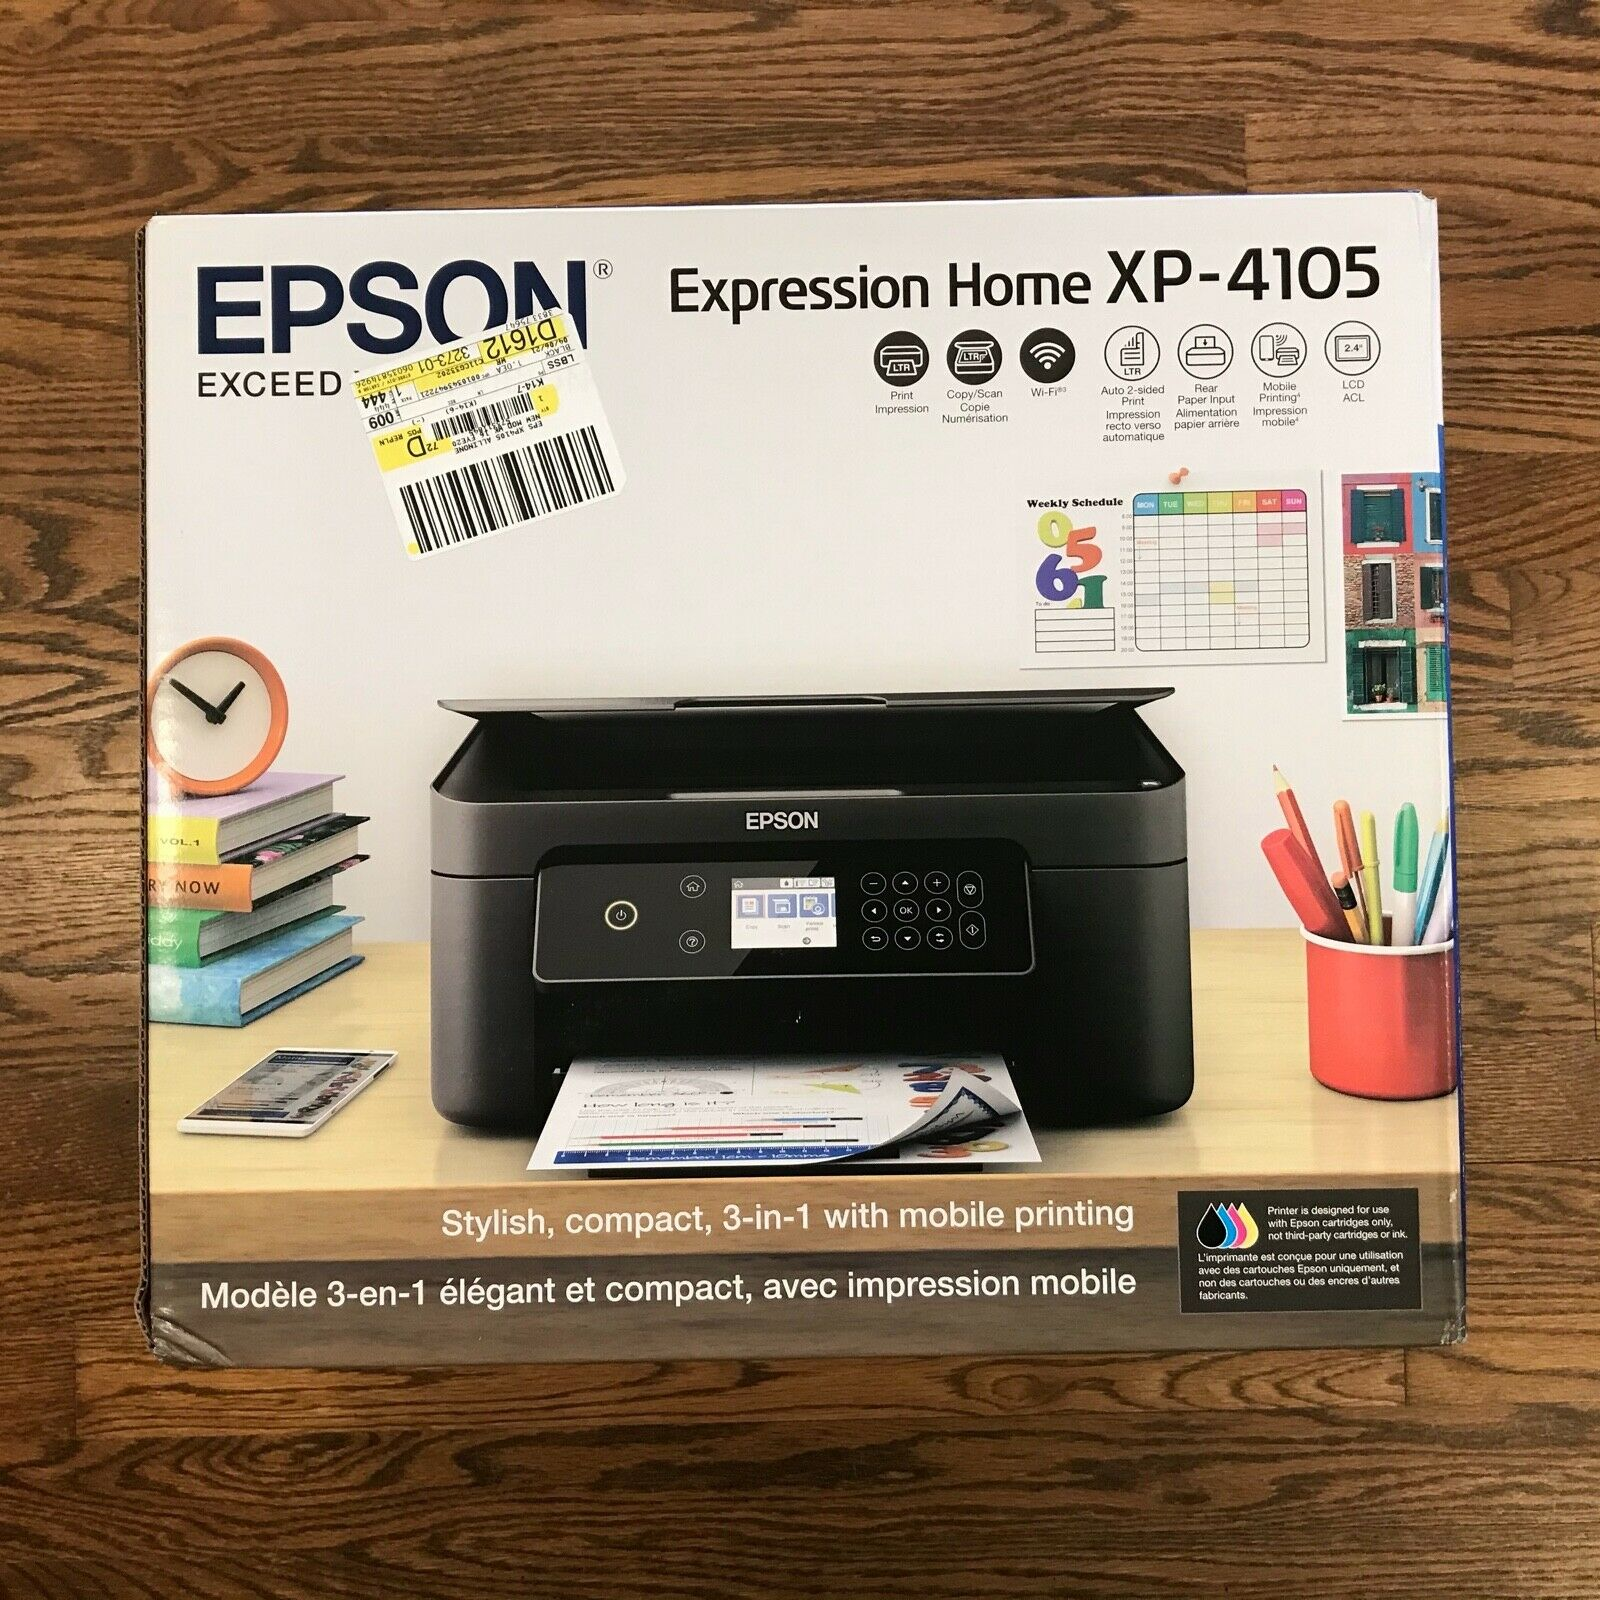 New Epson Expression Home XP-4105 Wireless All-in-One Color Inkjet Printer - $94.88